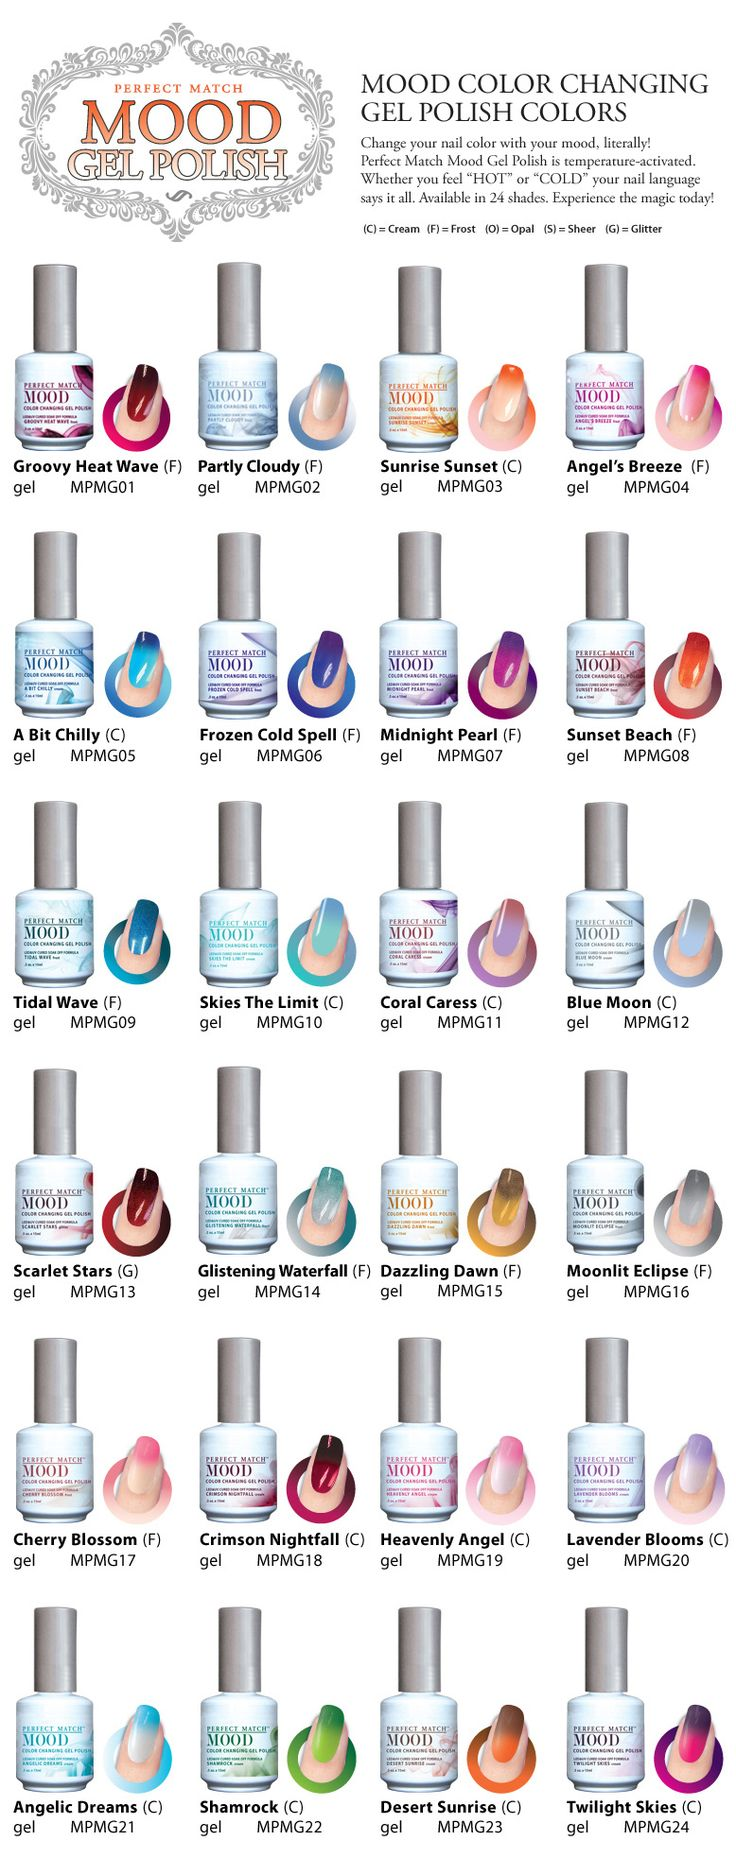 Best 25 mood changing nail polish ideas on pinterest mood best 25 mood changing nail polish ideas on pinterest mood changing nails color change nail polish and temperature changing nail polish nvjuhfo Images